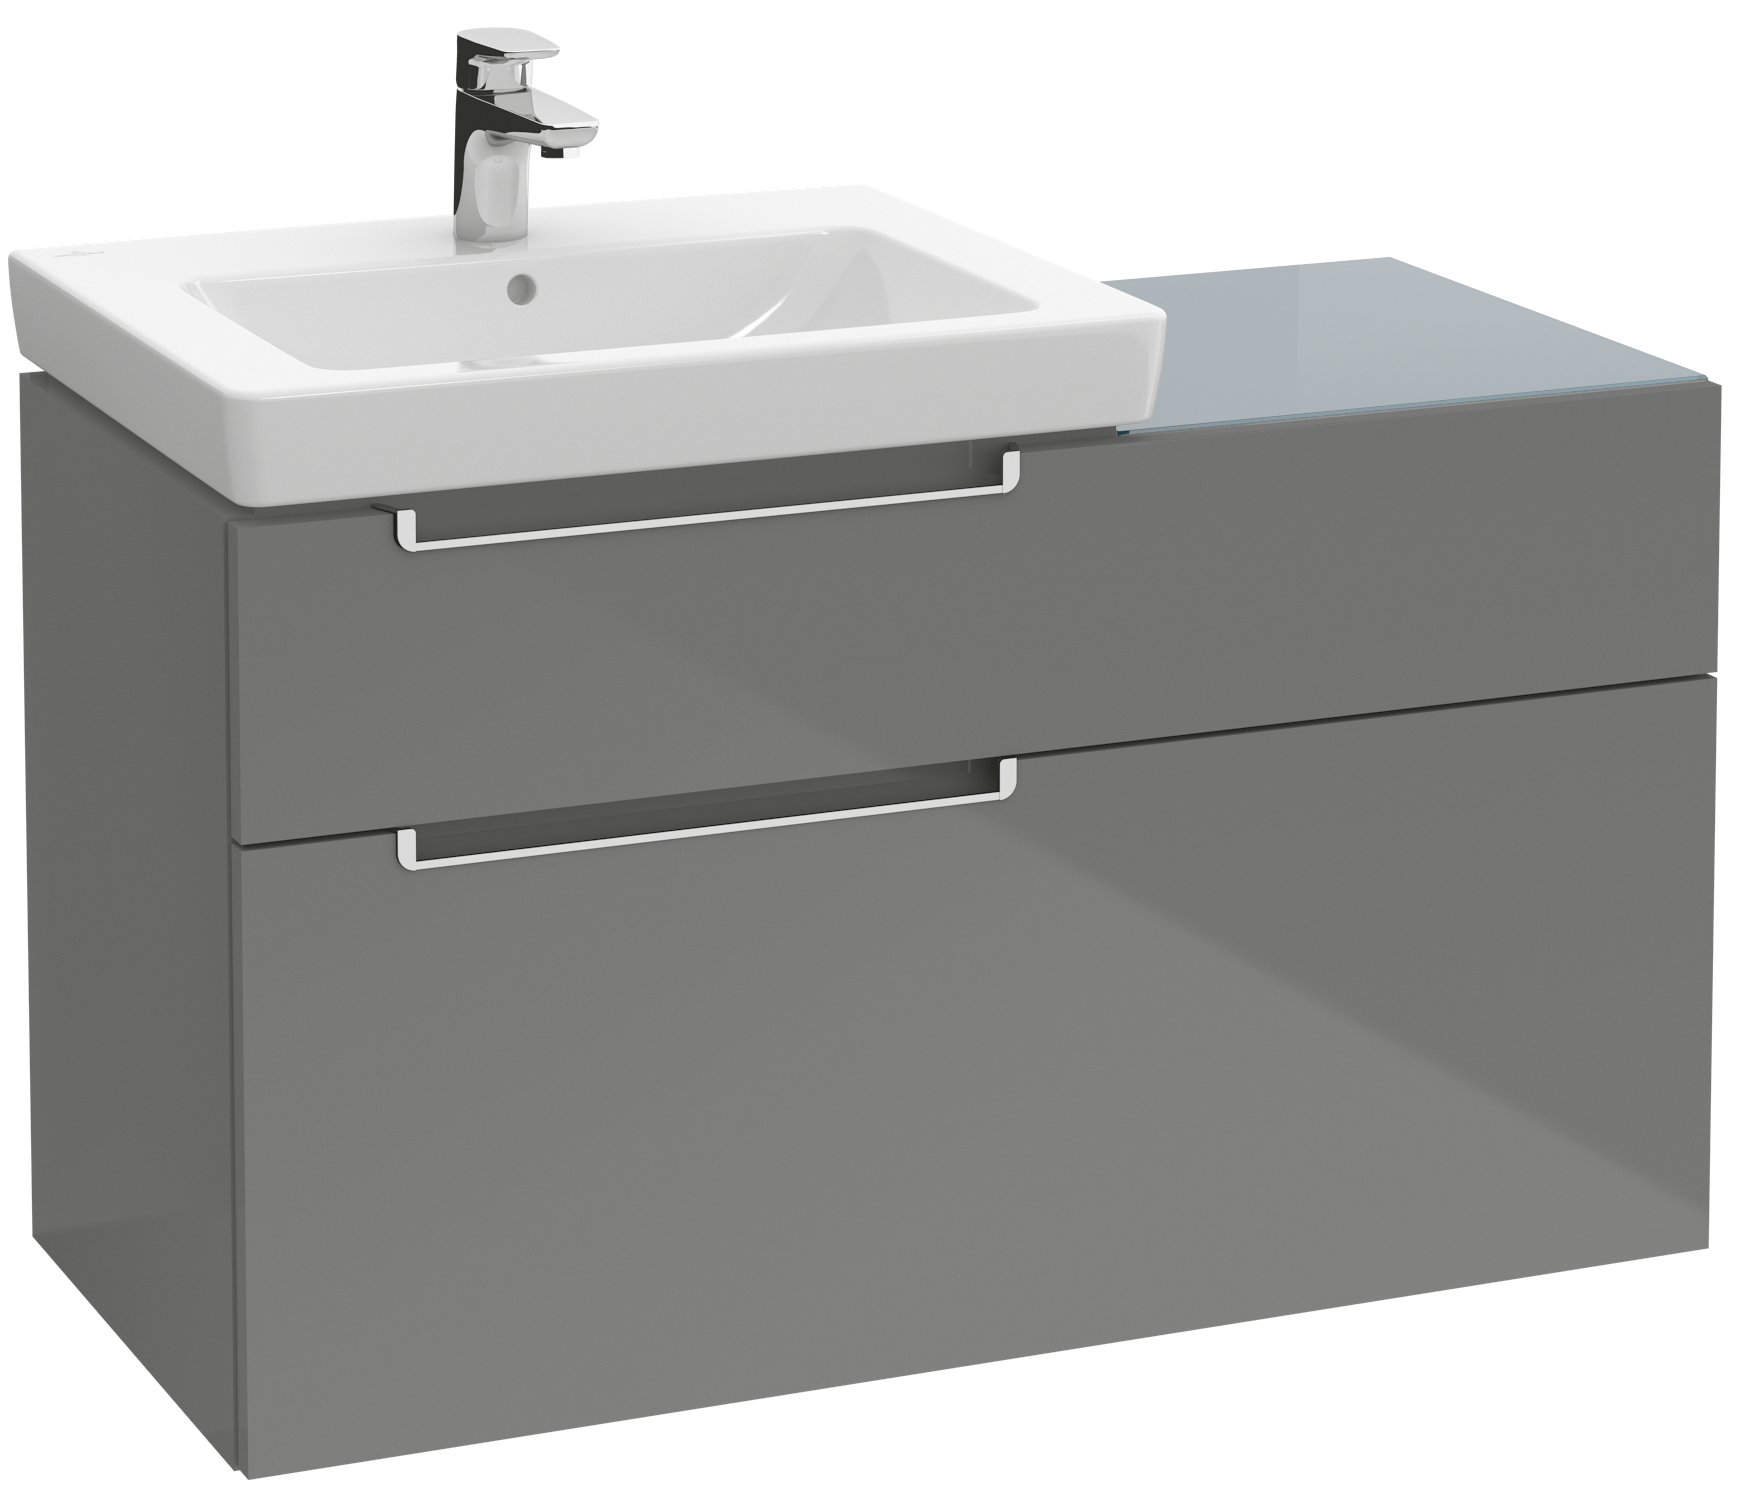 Delicieux Subway 2.0 Bathroom Furniture, Vanity Unit For Washbasin, Bathroom Sink  Cabinets